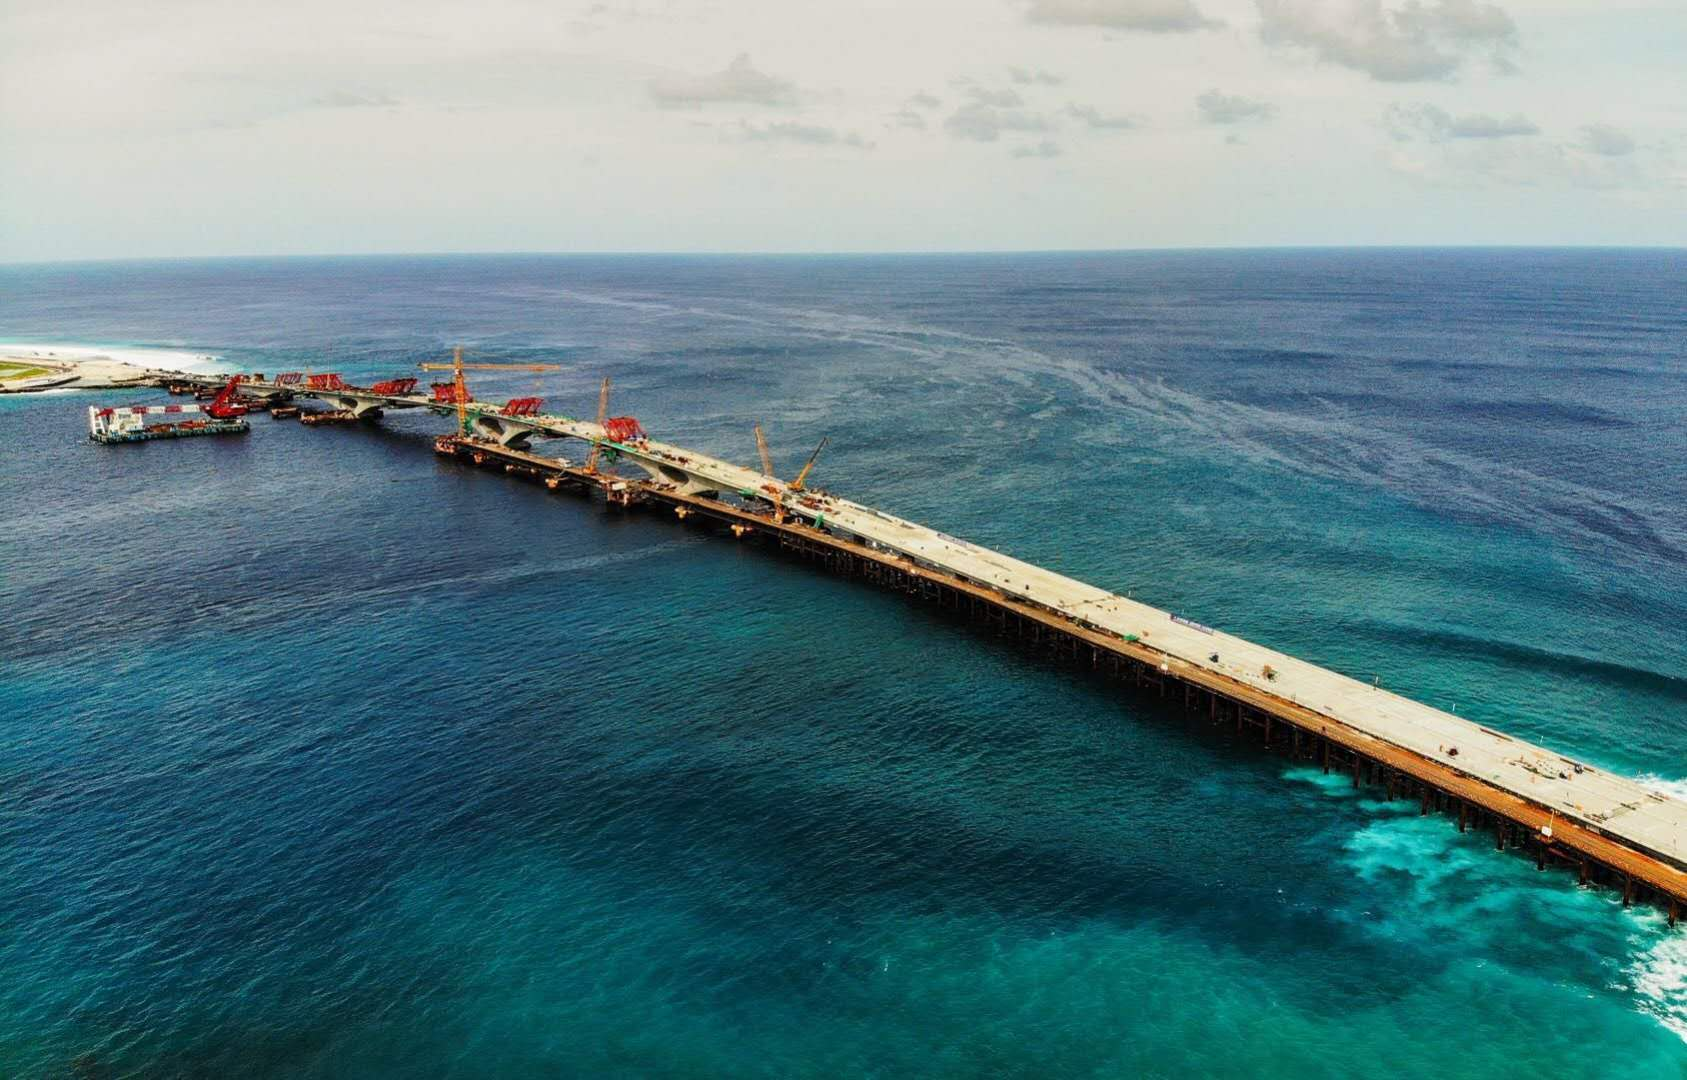 China-Maldives Friendship Bridge completed